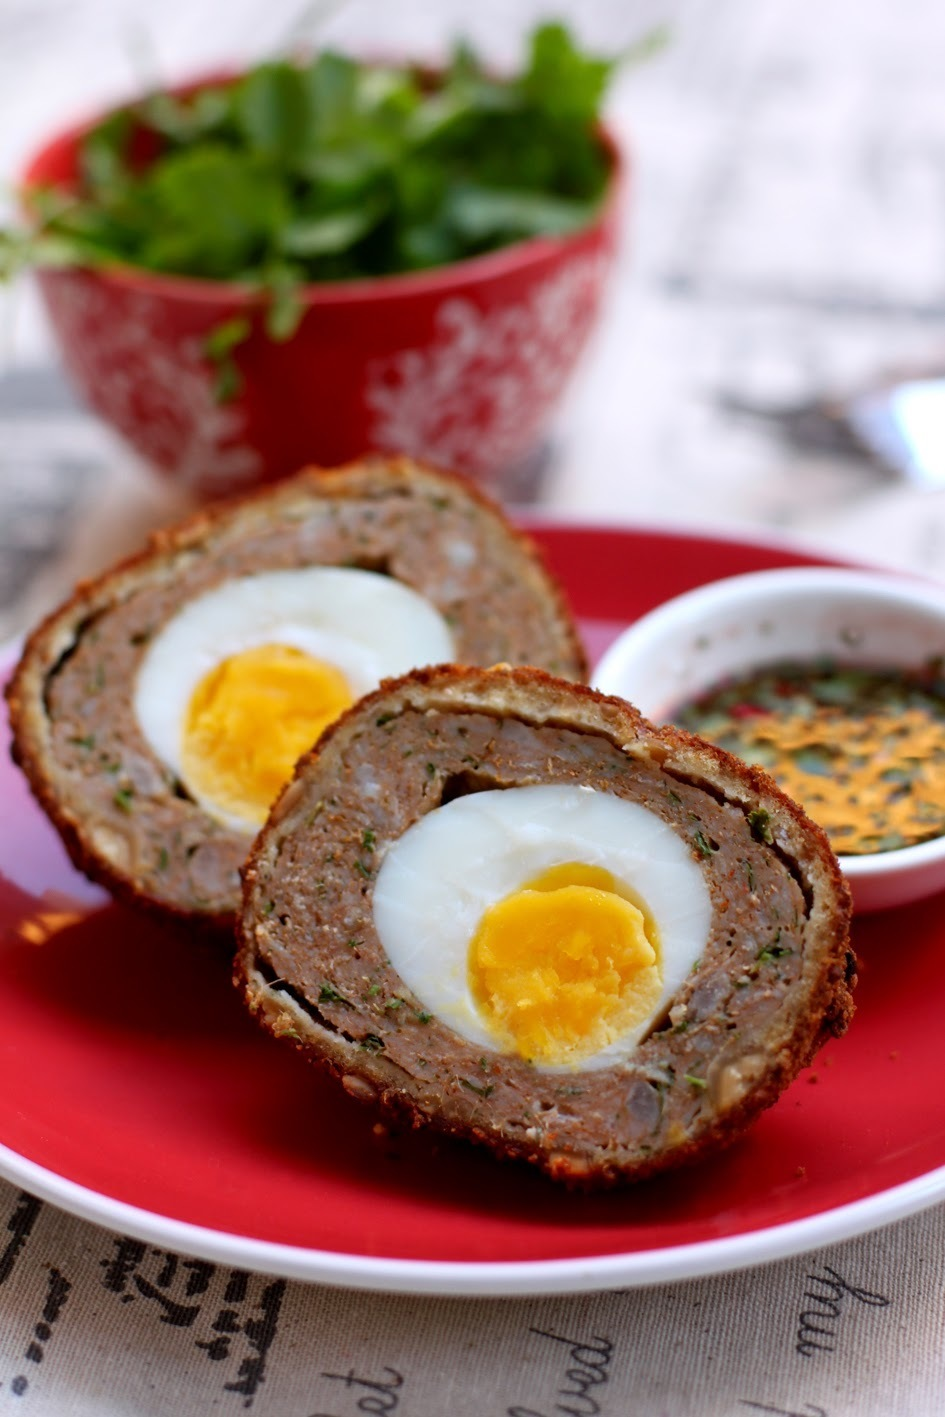 Thai Red Curry Scotch Eggs